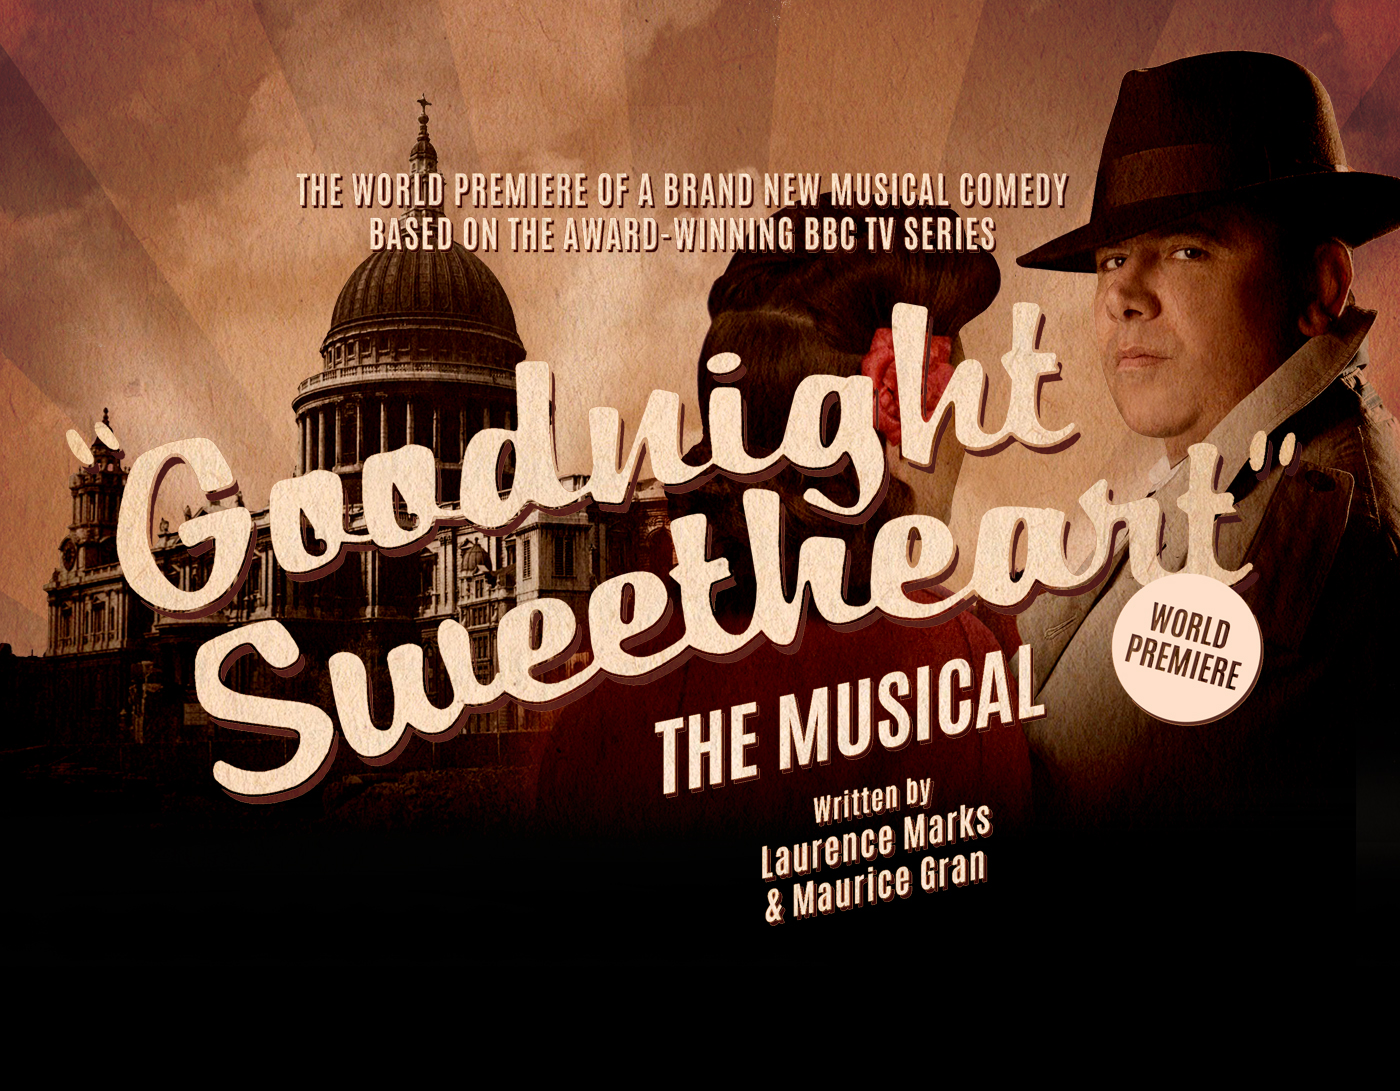 Goodnight Sweetheart The Musical